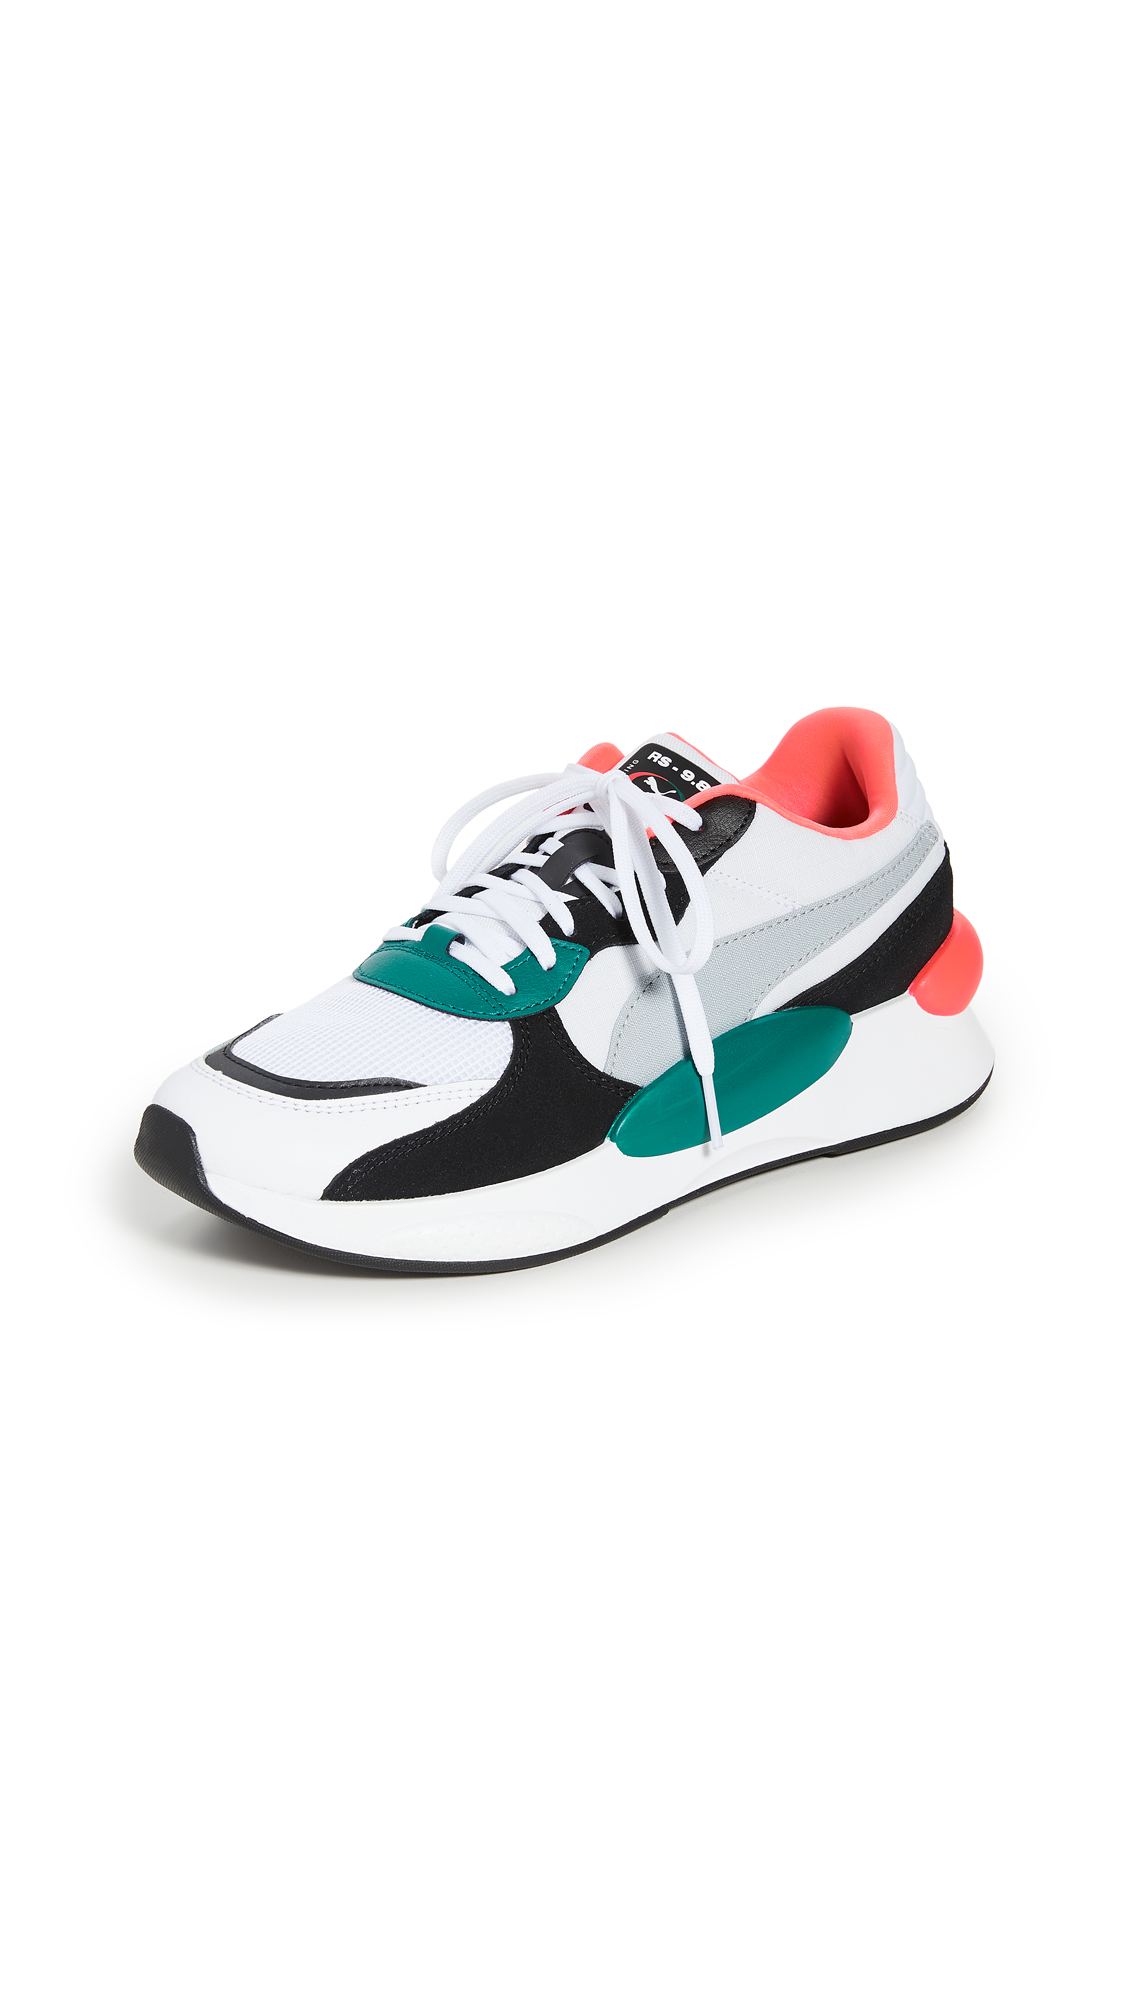 PUMA RS 9.8 Space Sneakers - 40% Off Sale